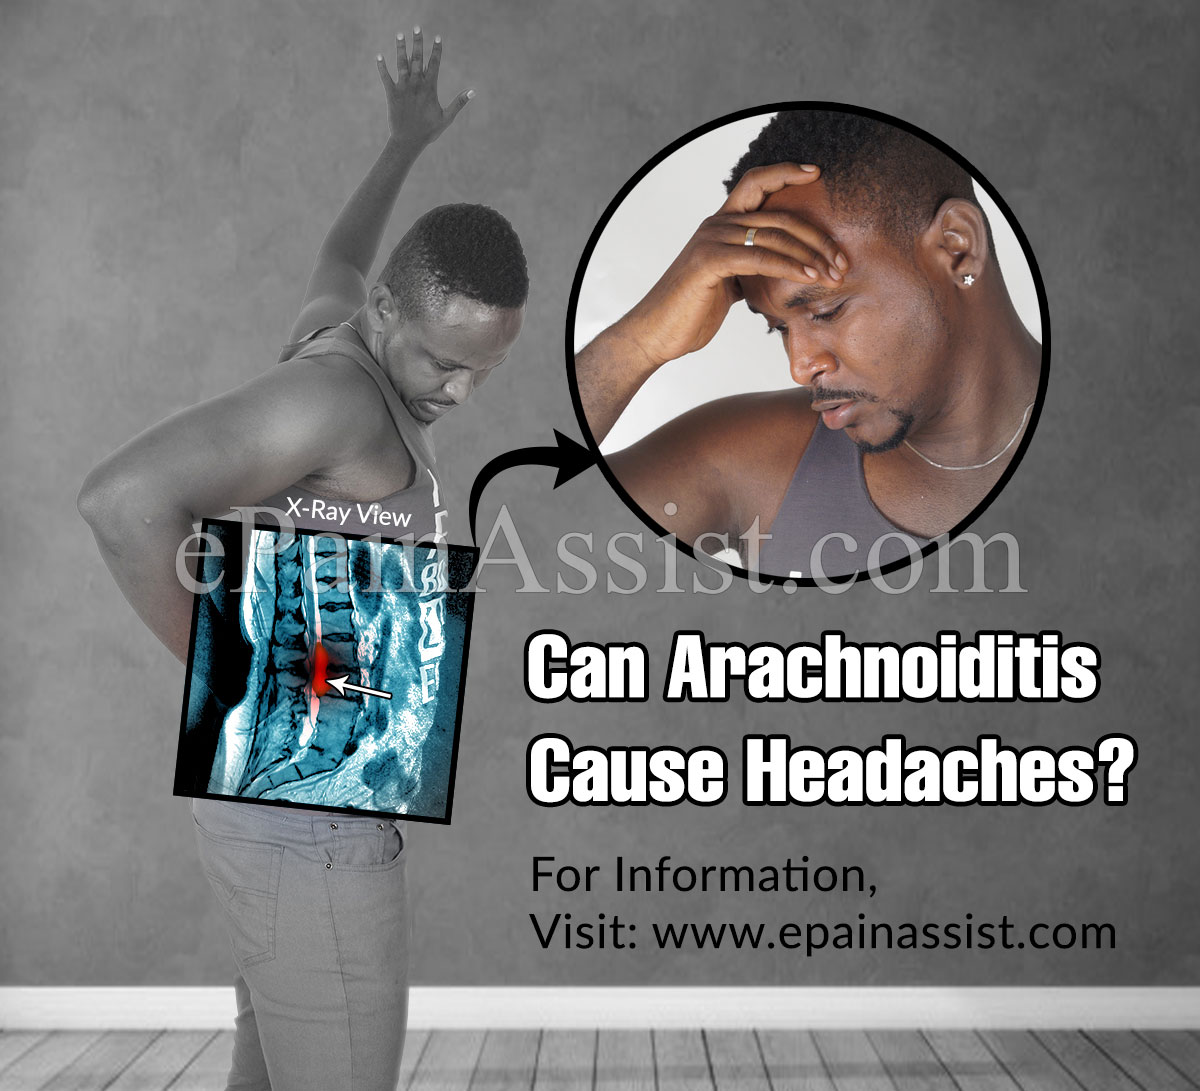 Can Arachnoiditis Cause Headaches?